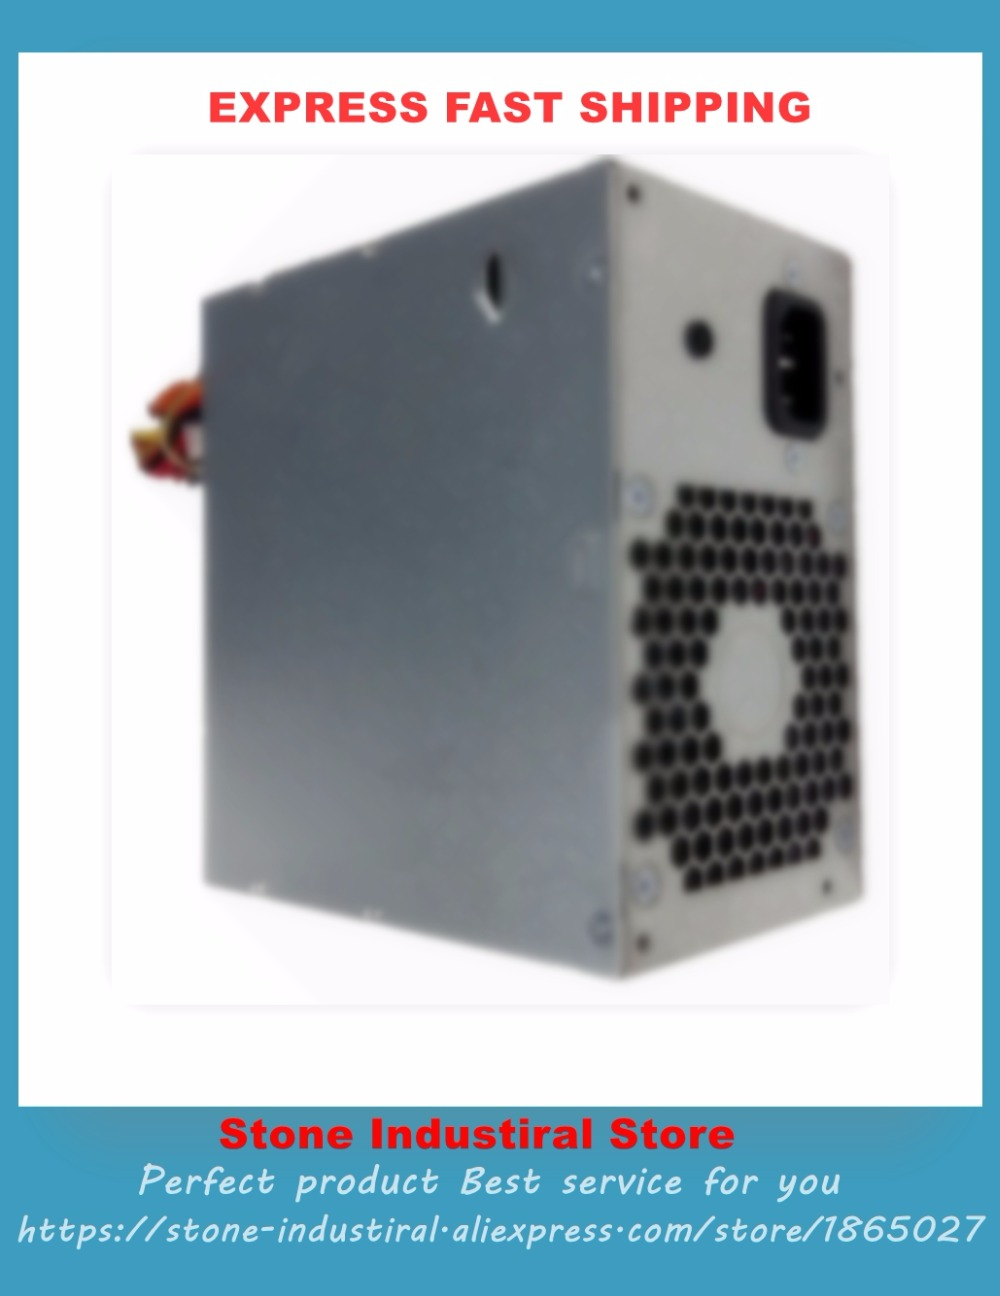 Powe supply for T7500 N1100EF-00 R622G 0R622G NPS-1100BB Max 1100W tested good quality powe r supply for pws 0050 m sp382 ts 380w tested working good